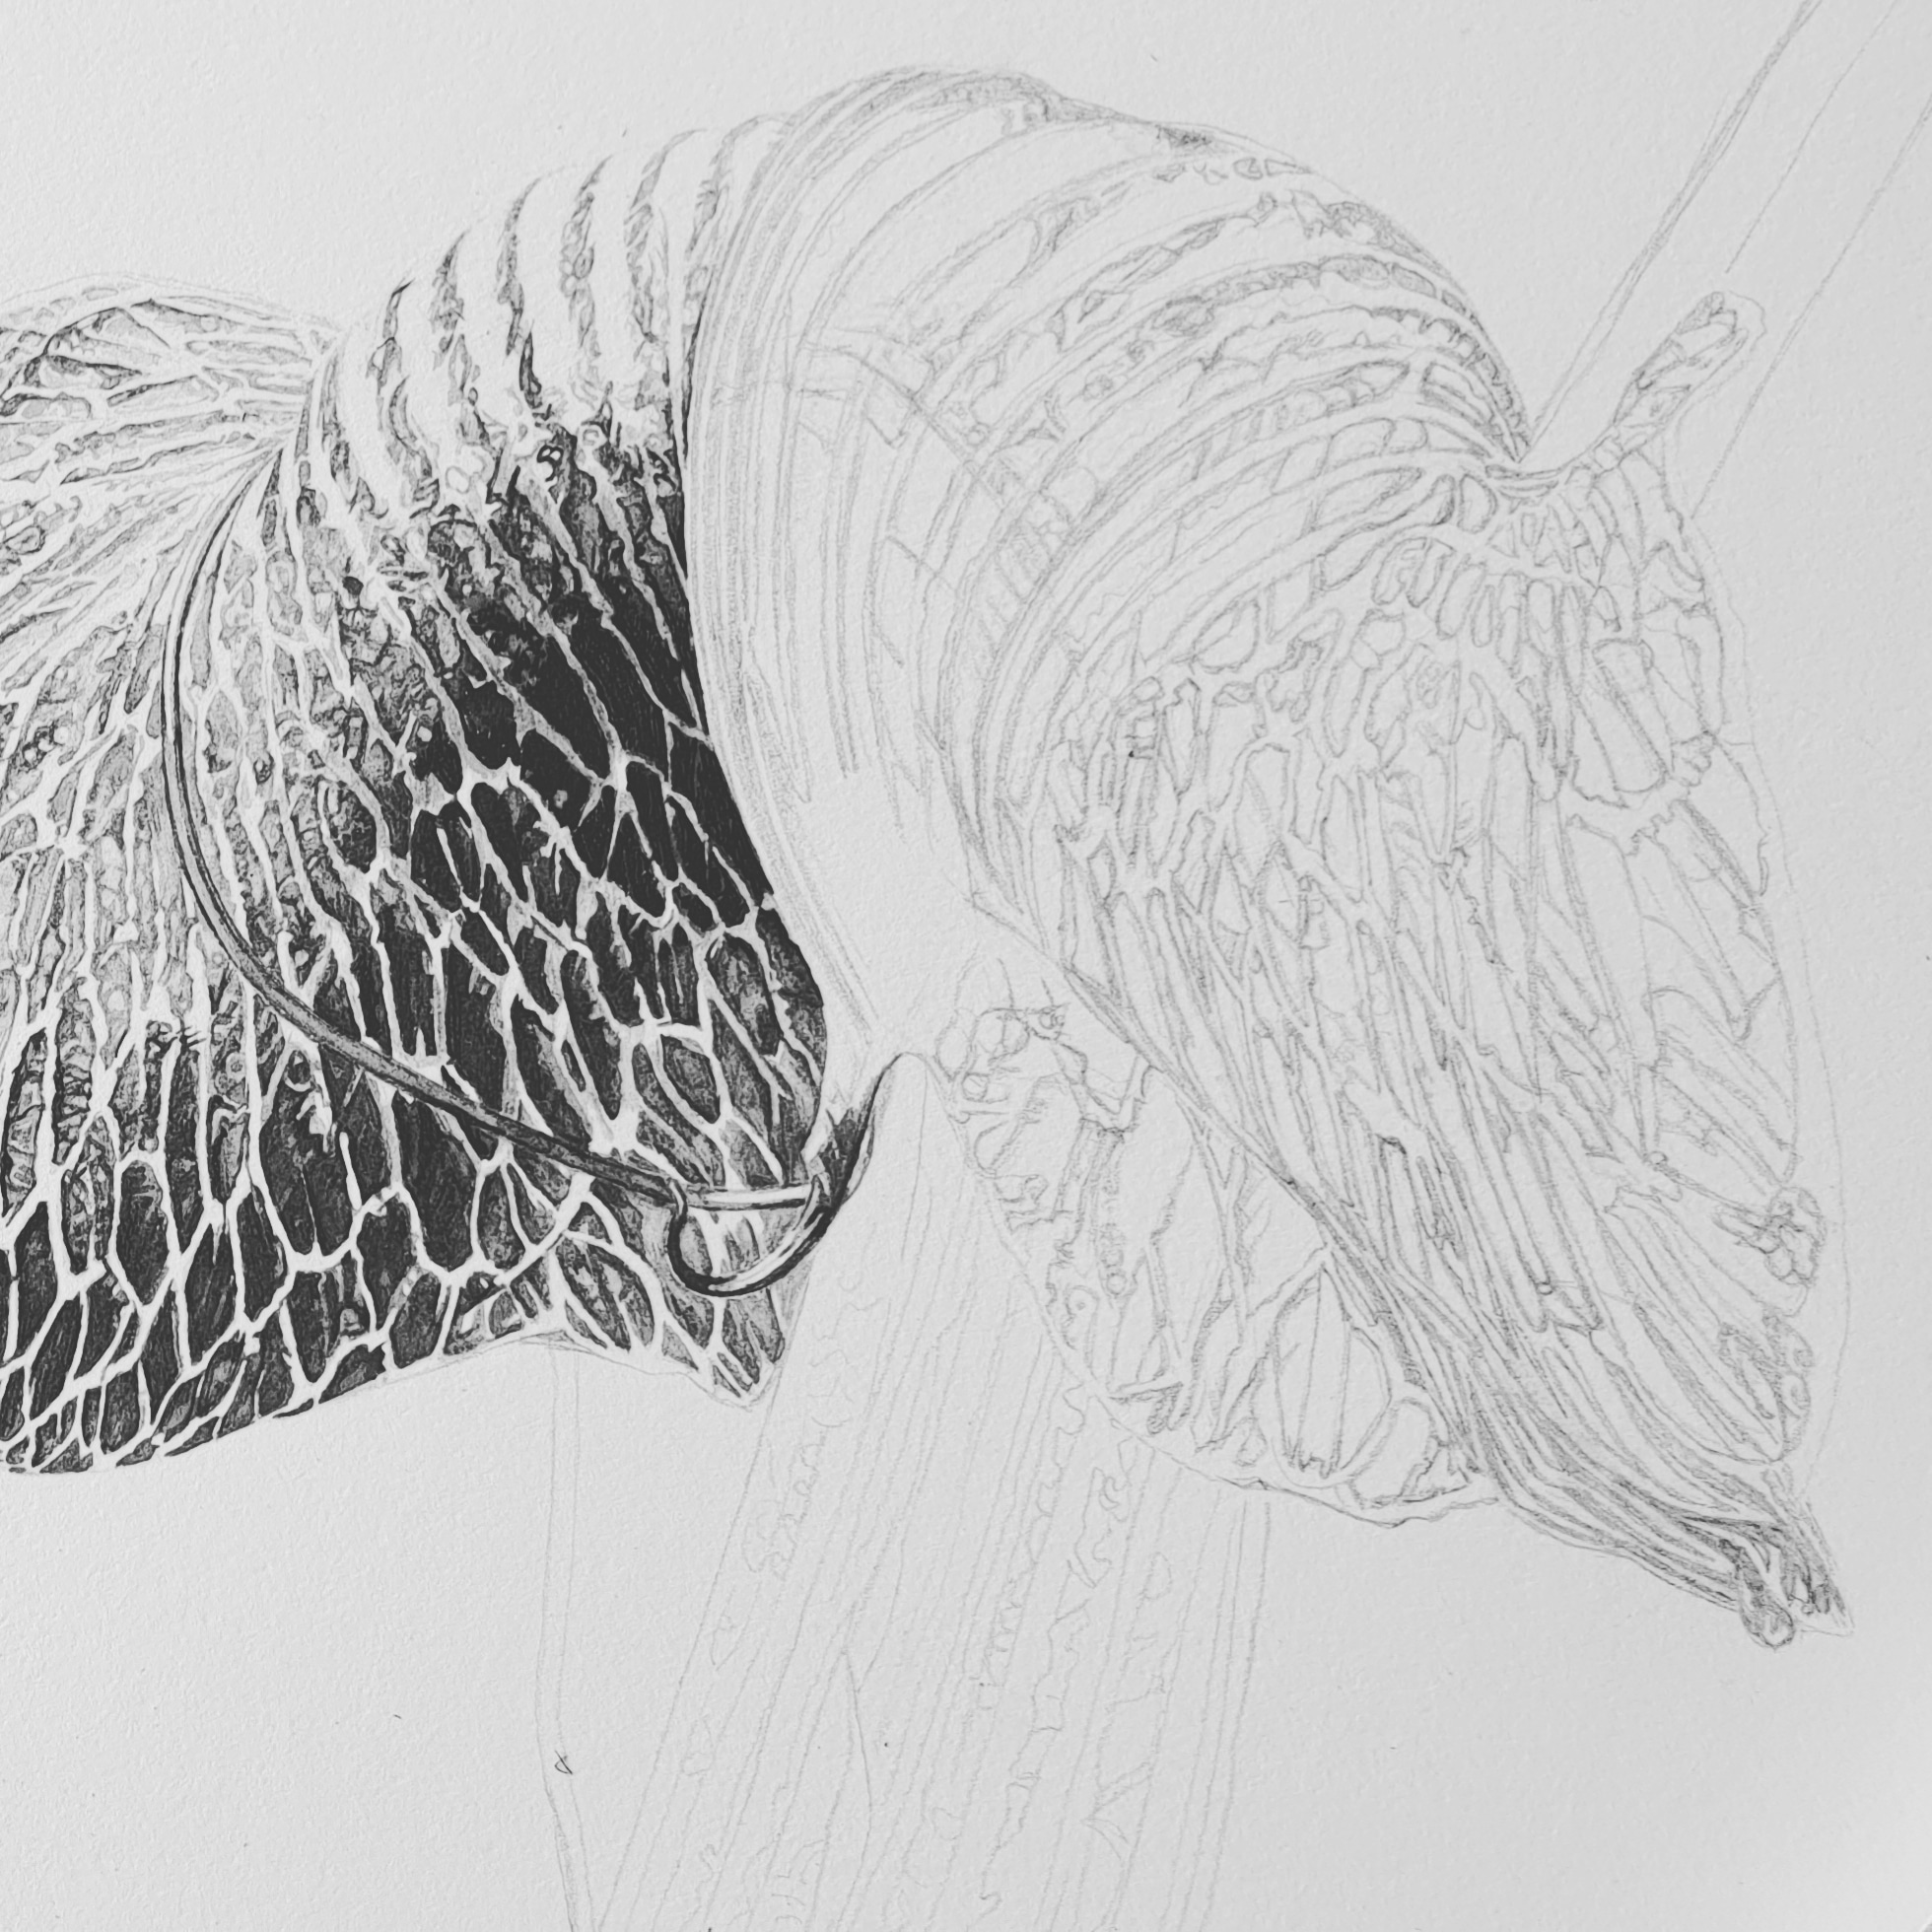 Progress shot - Arisaema griffithii var. pradhanii Japanese ink paste on Lambeth Cartridge